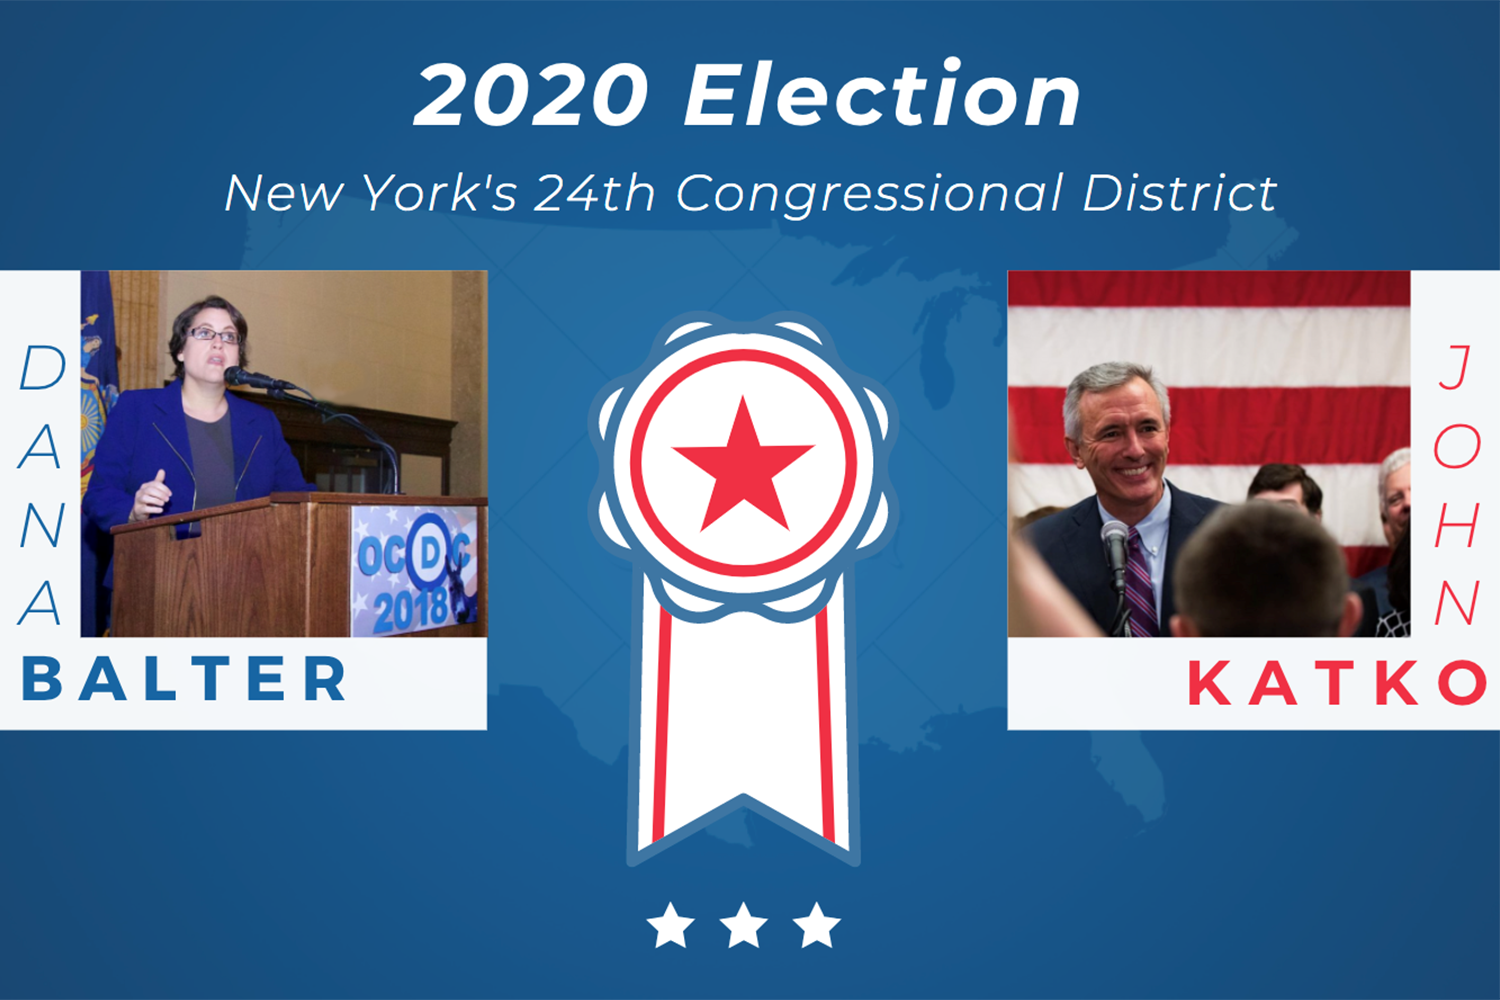 2020 Election: Dana Balter vs. John Katko